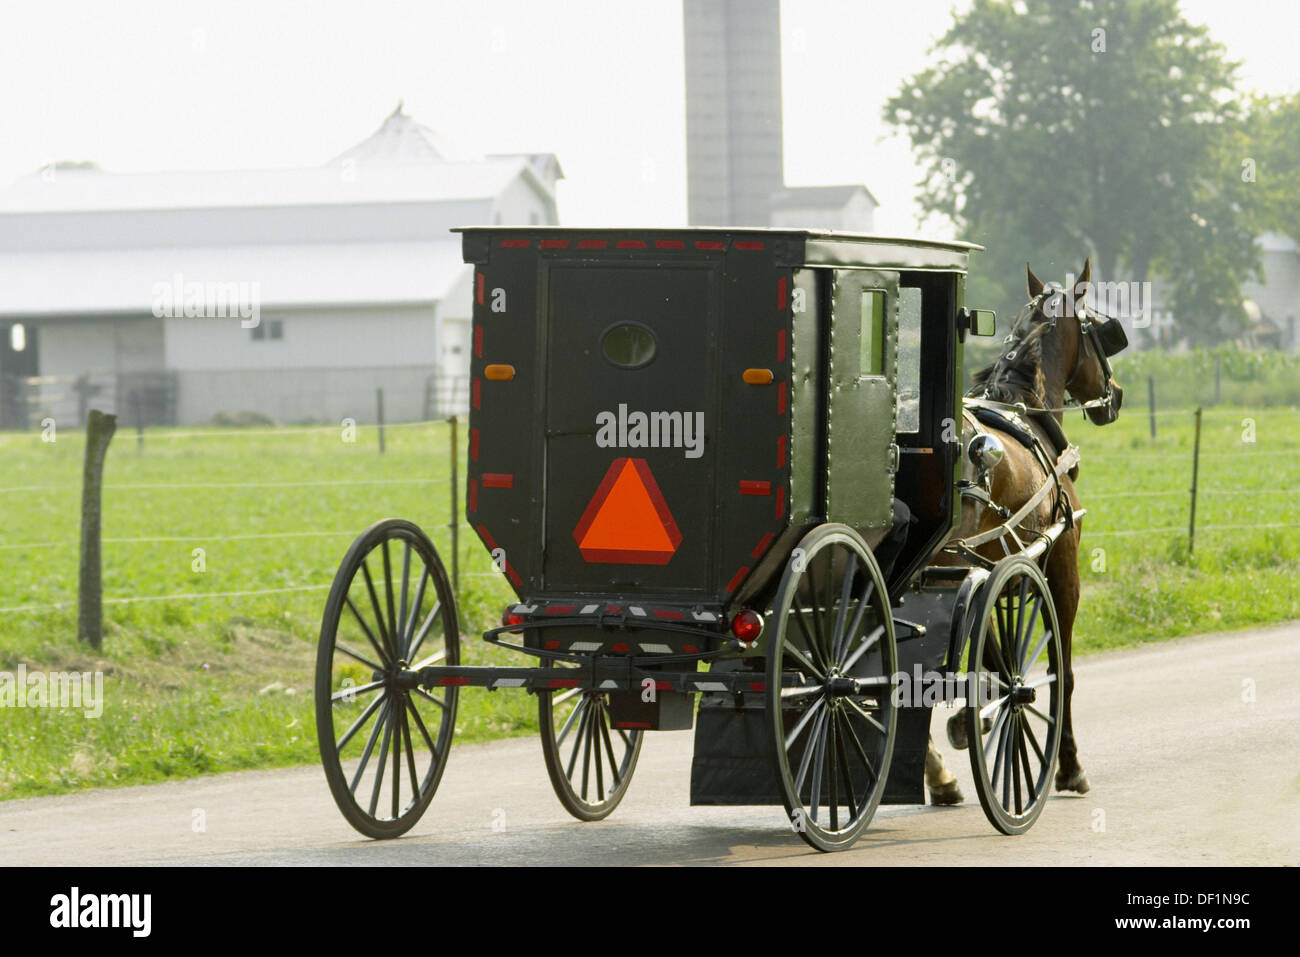 Two Amish men ride in enclosed buggy with orange triangle pulled by horse on road, viewed from behind. Arthur. Illinois, USA - Stock Image